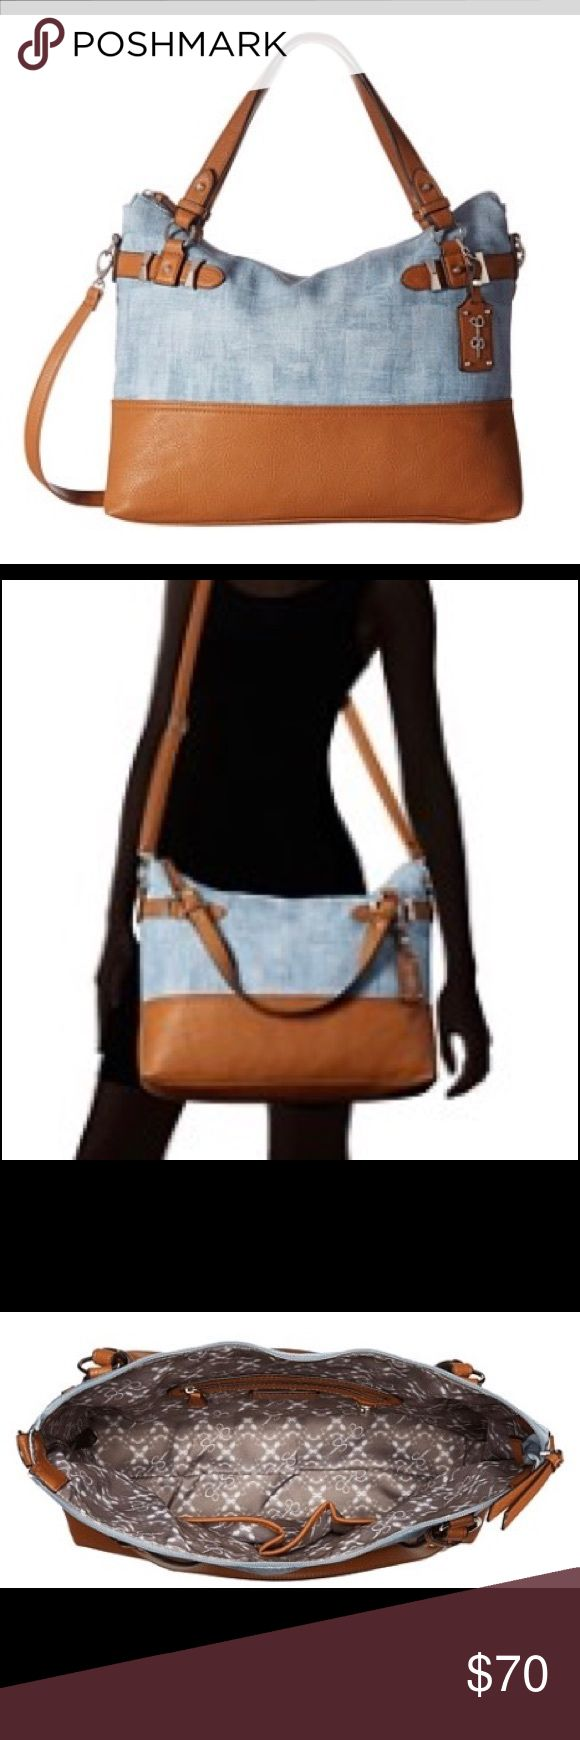 NWT Jessica Simpson Katalina Crossbody Tote Denim Travel in style with this Denim delight from jessica Simpson.  This large, double handled cross-body tote is the perfect way to carry everything you need while still looking sleek. Jessica Simpson Bags Crossbody Bags